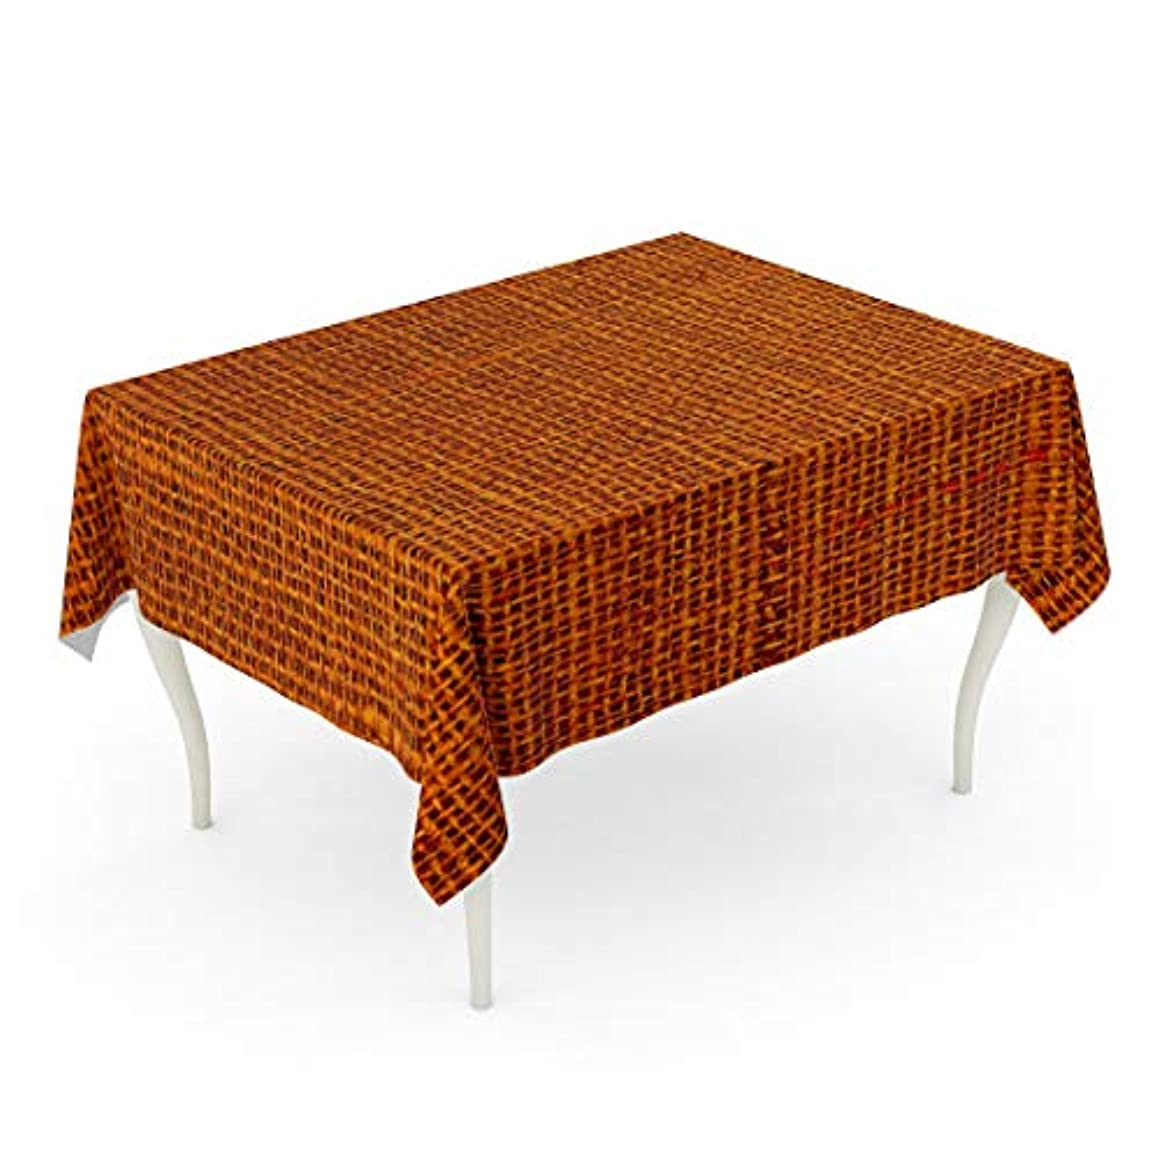 Tarolo Rectangle Tablecloth 60 x 102 Inch Close Blank Rust Colored Canvas Macro Detail Full Copy Empty Negative Pattern Patterned Table Cloth